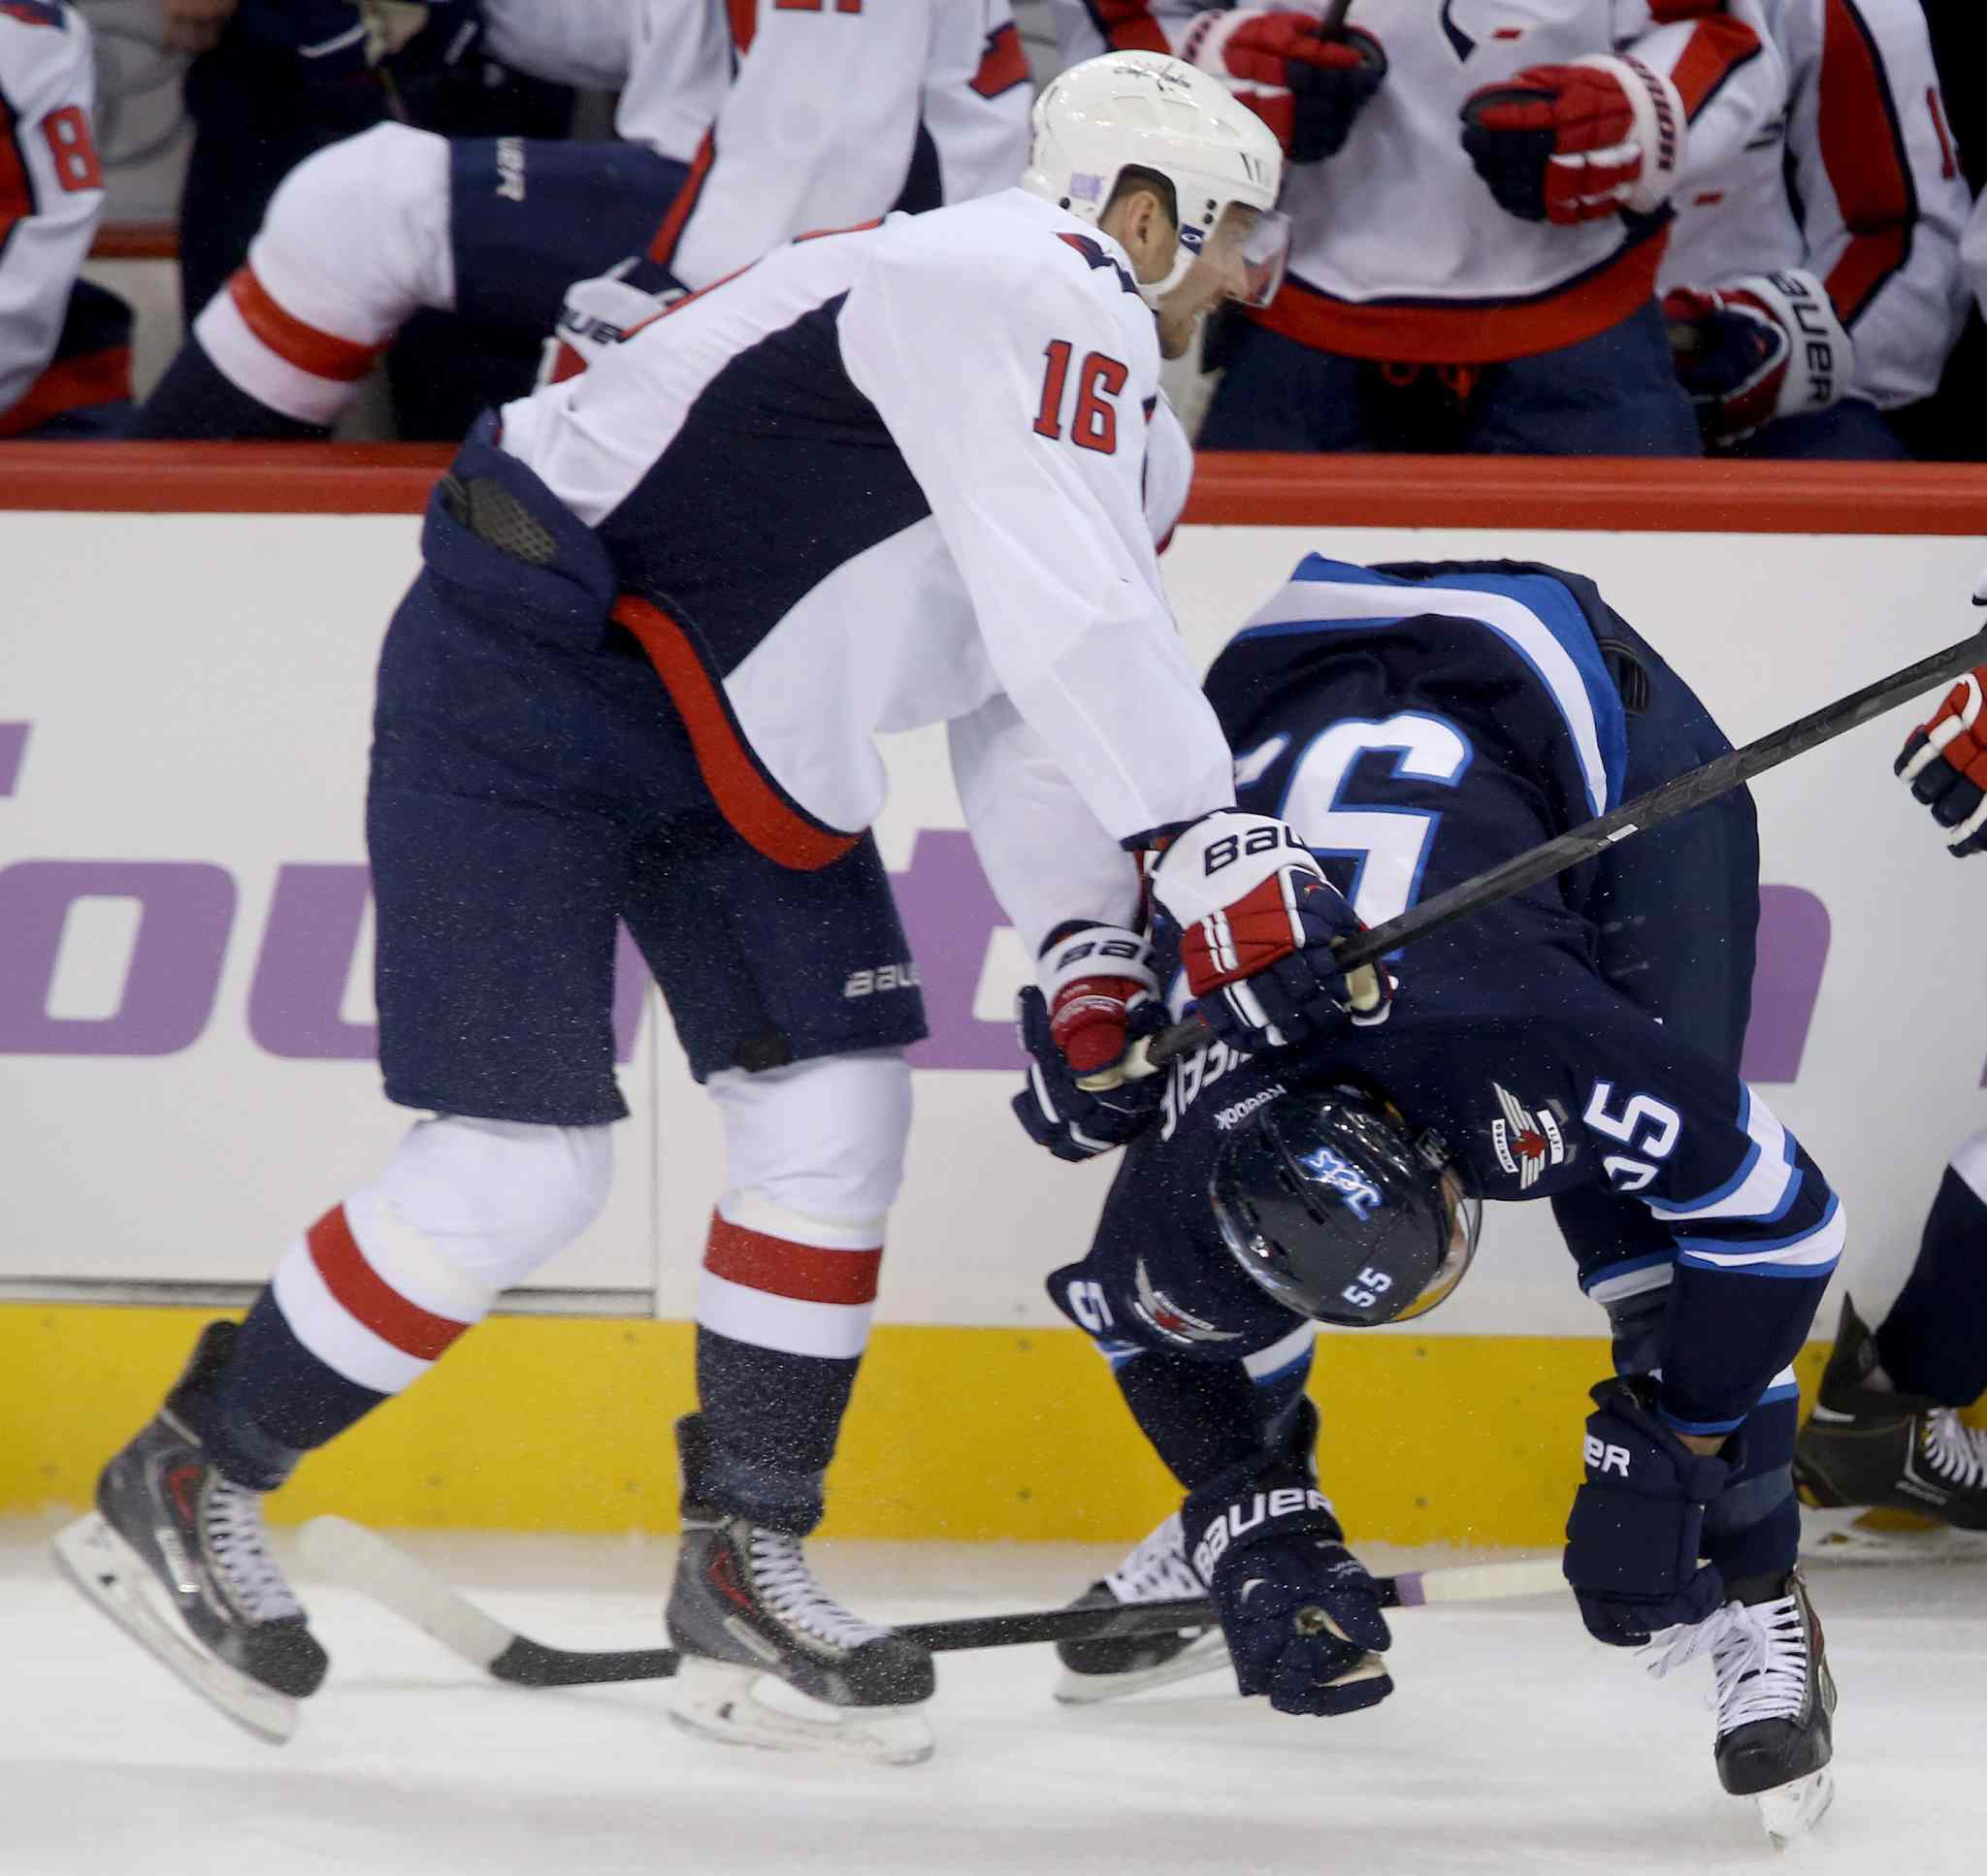 Washington Capitals forward Eric Fehr lays the lumber on Winnipeg Jets forward Mark Scheifele in front of the Capitals bench during the first period.